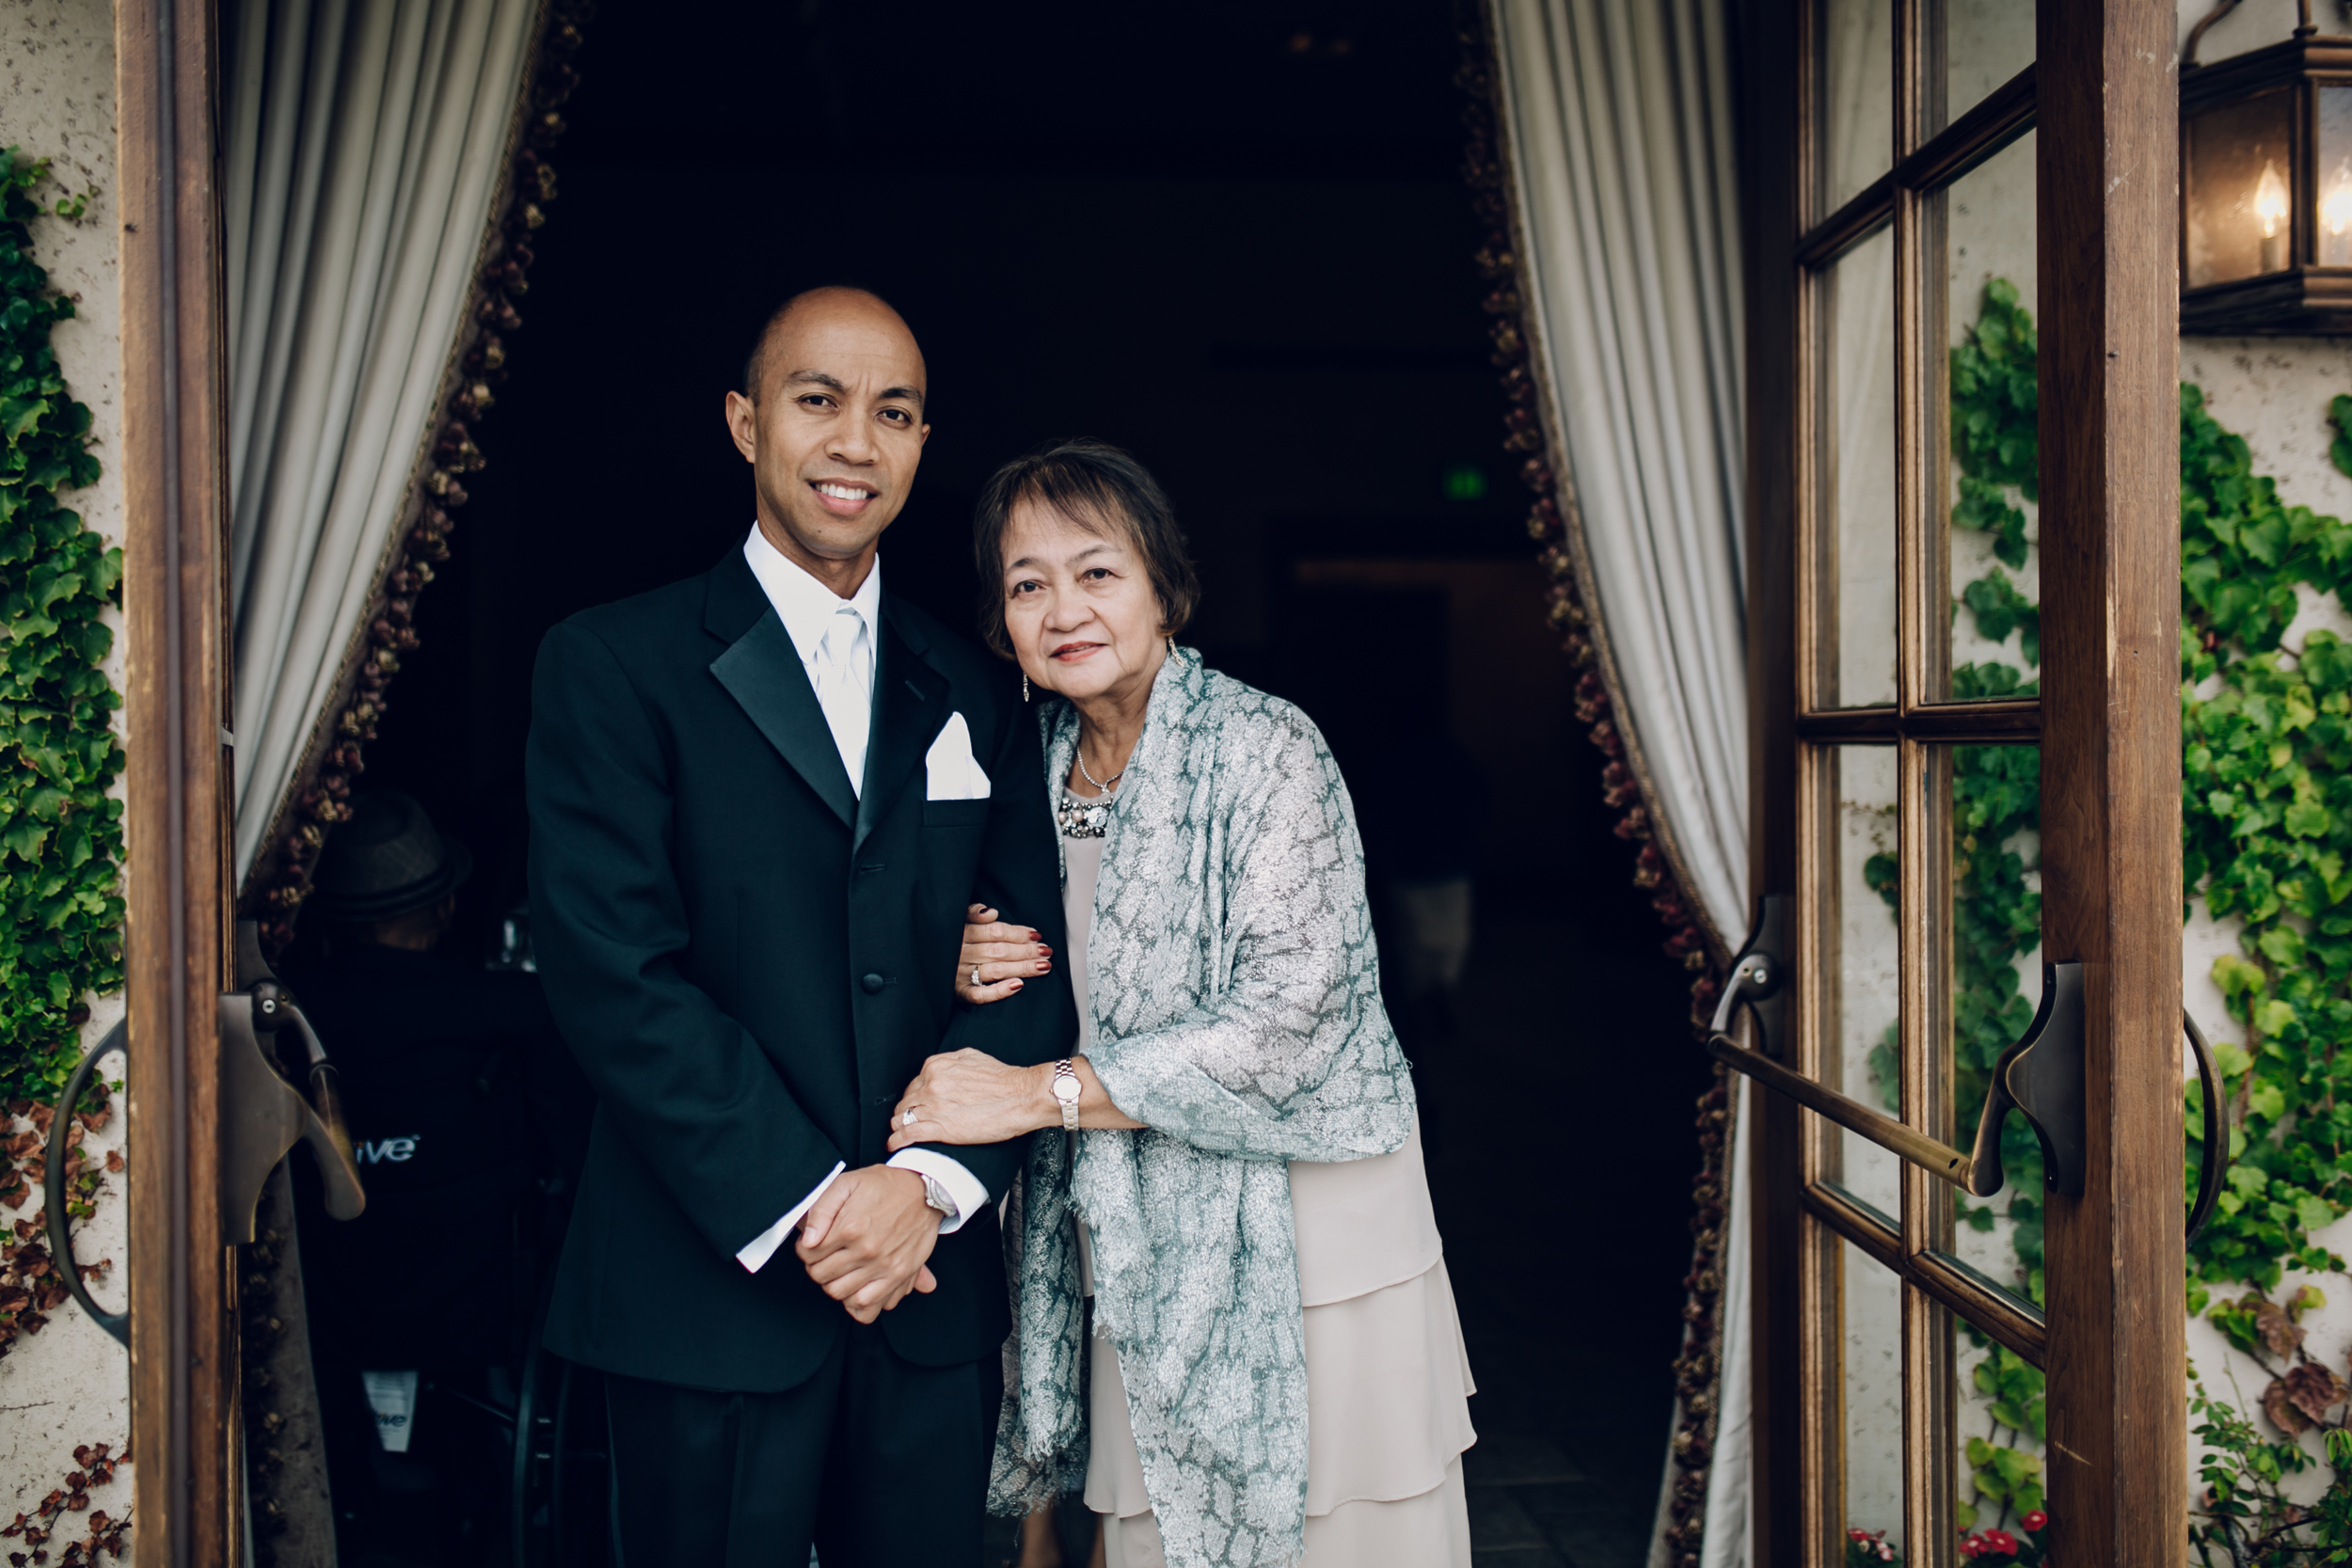 Shiela + Lester's Wedding 9-30-15 611.jpg